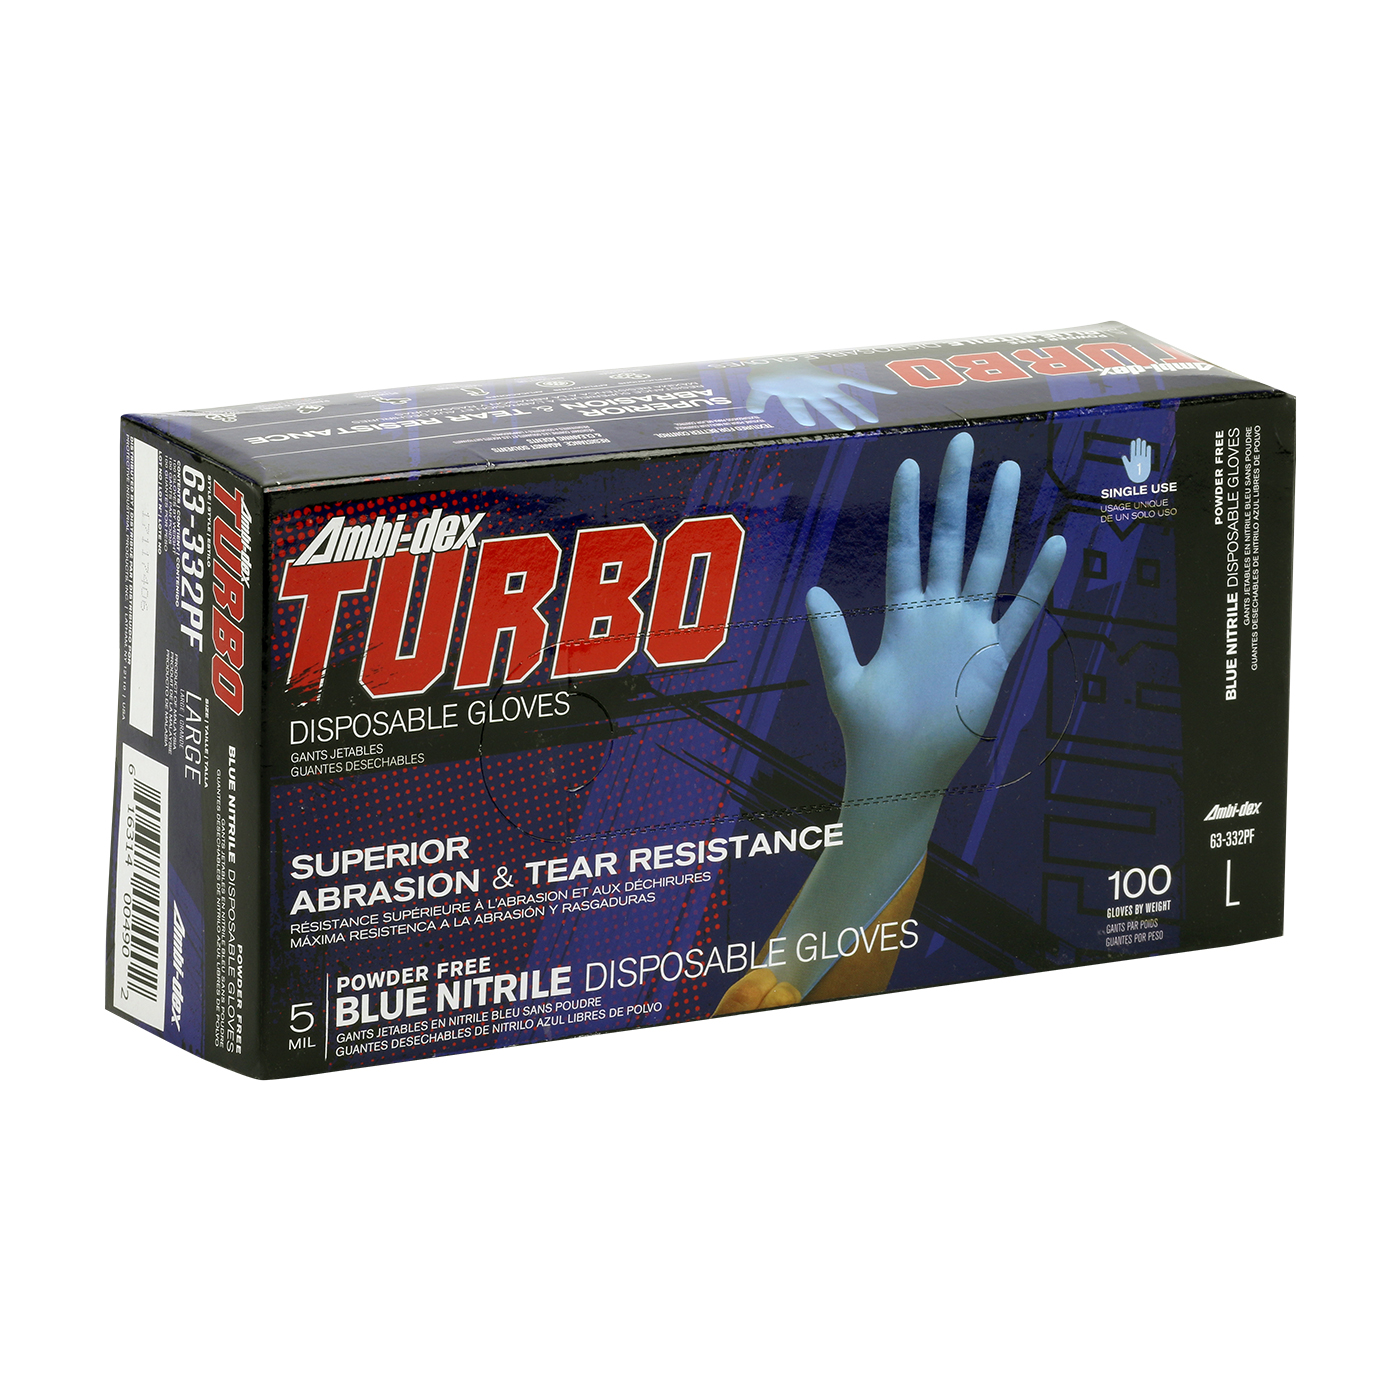 #63-332PF PIP Ambi-dex® Turbo Disposable Nitrile Glove, Powder Free with Textured Grip - 5 mil